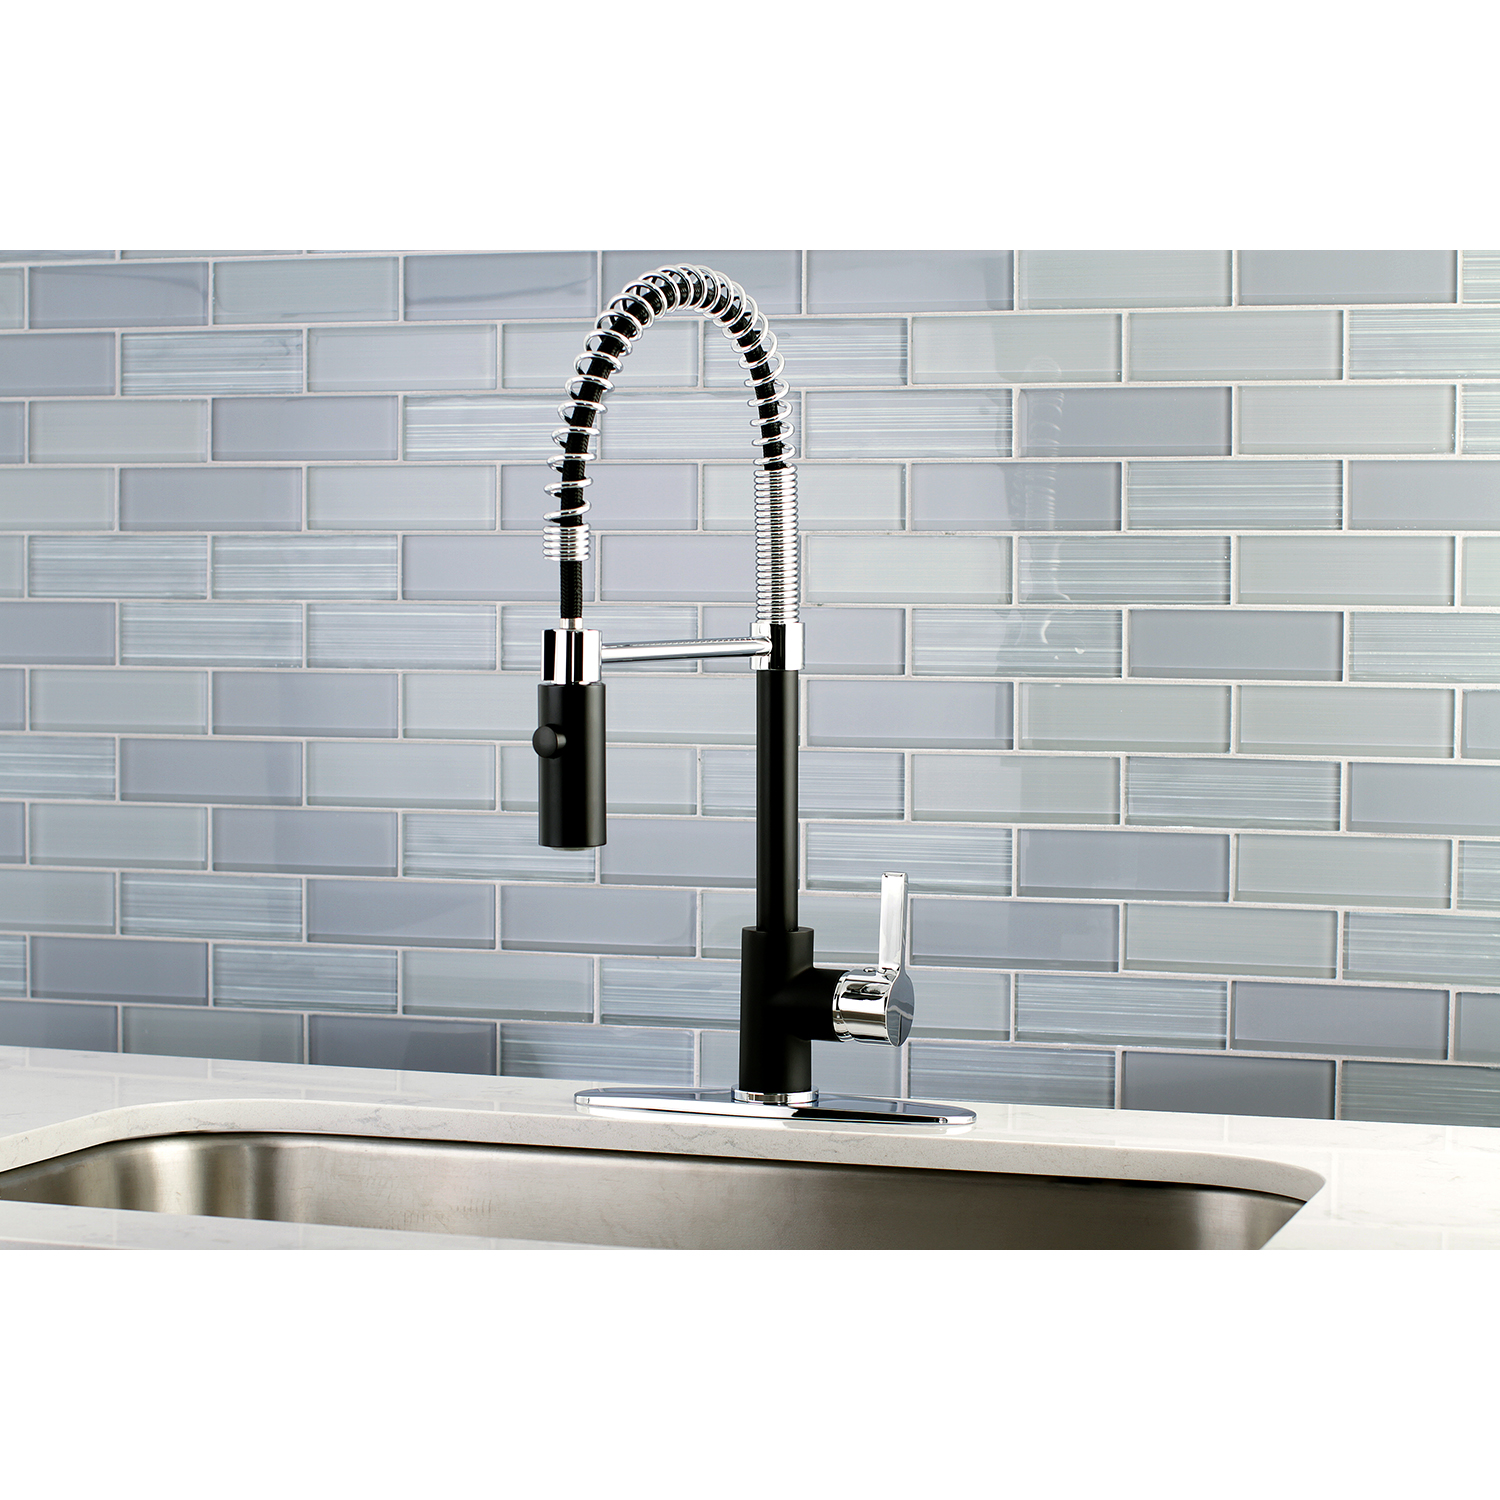 Fine Kitchen Bridge Faucet Model - Faucet Collections - thoughtfire.info